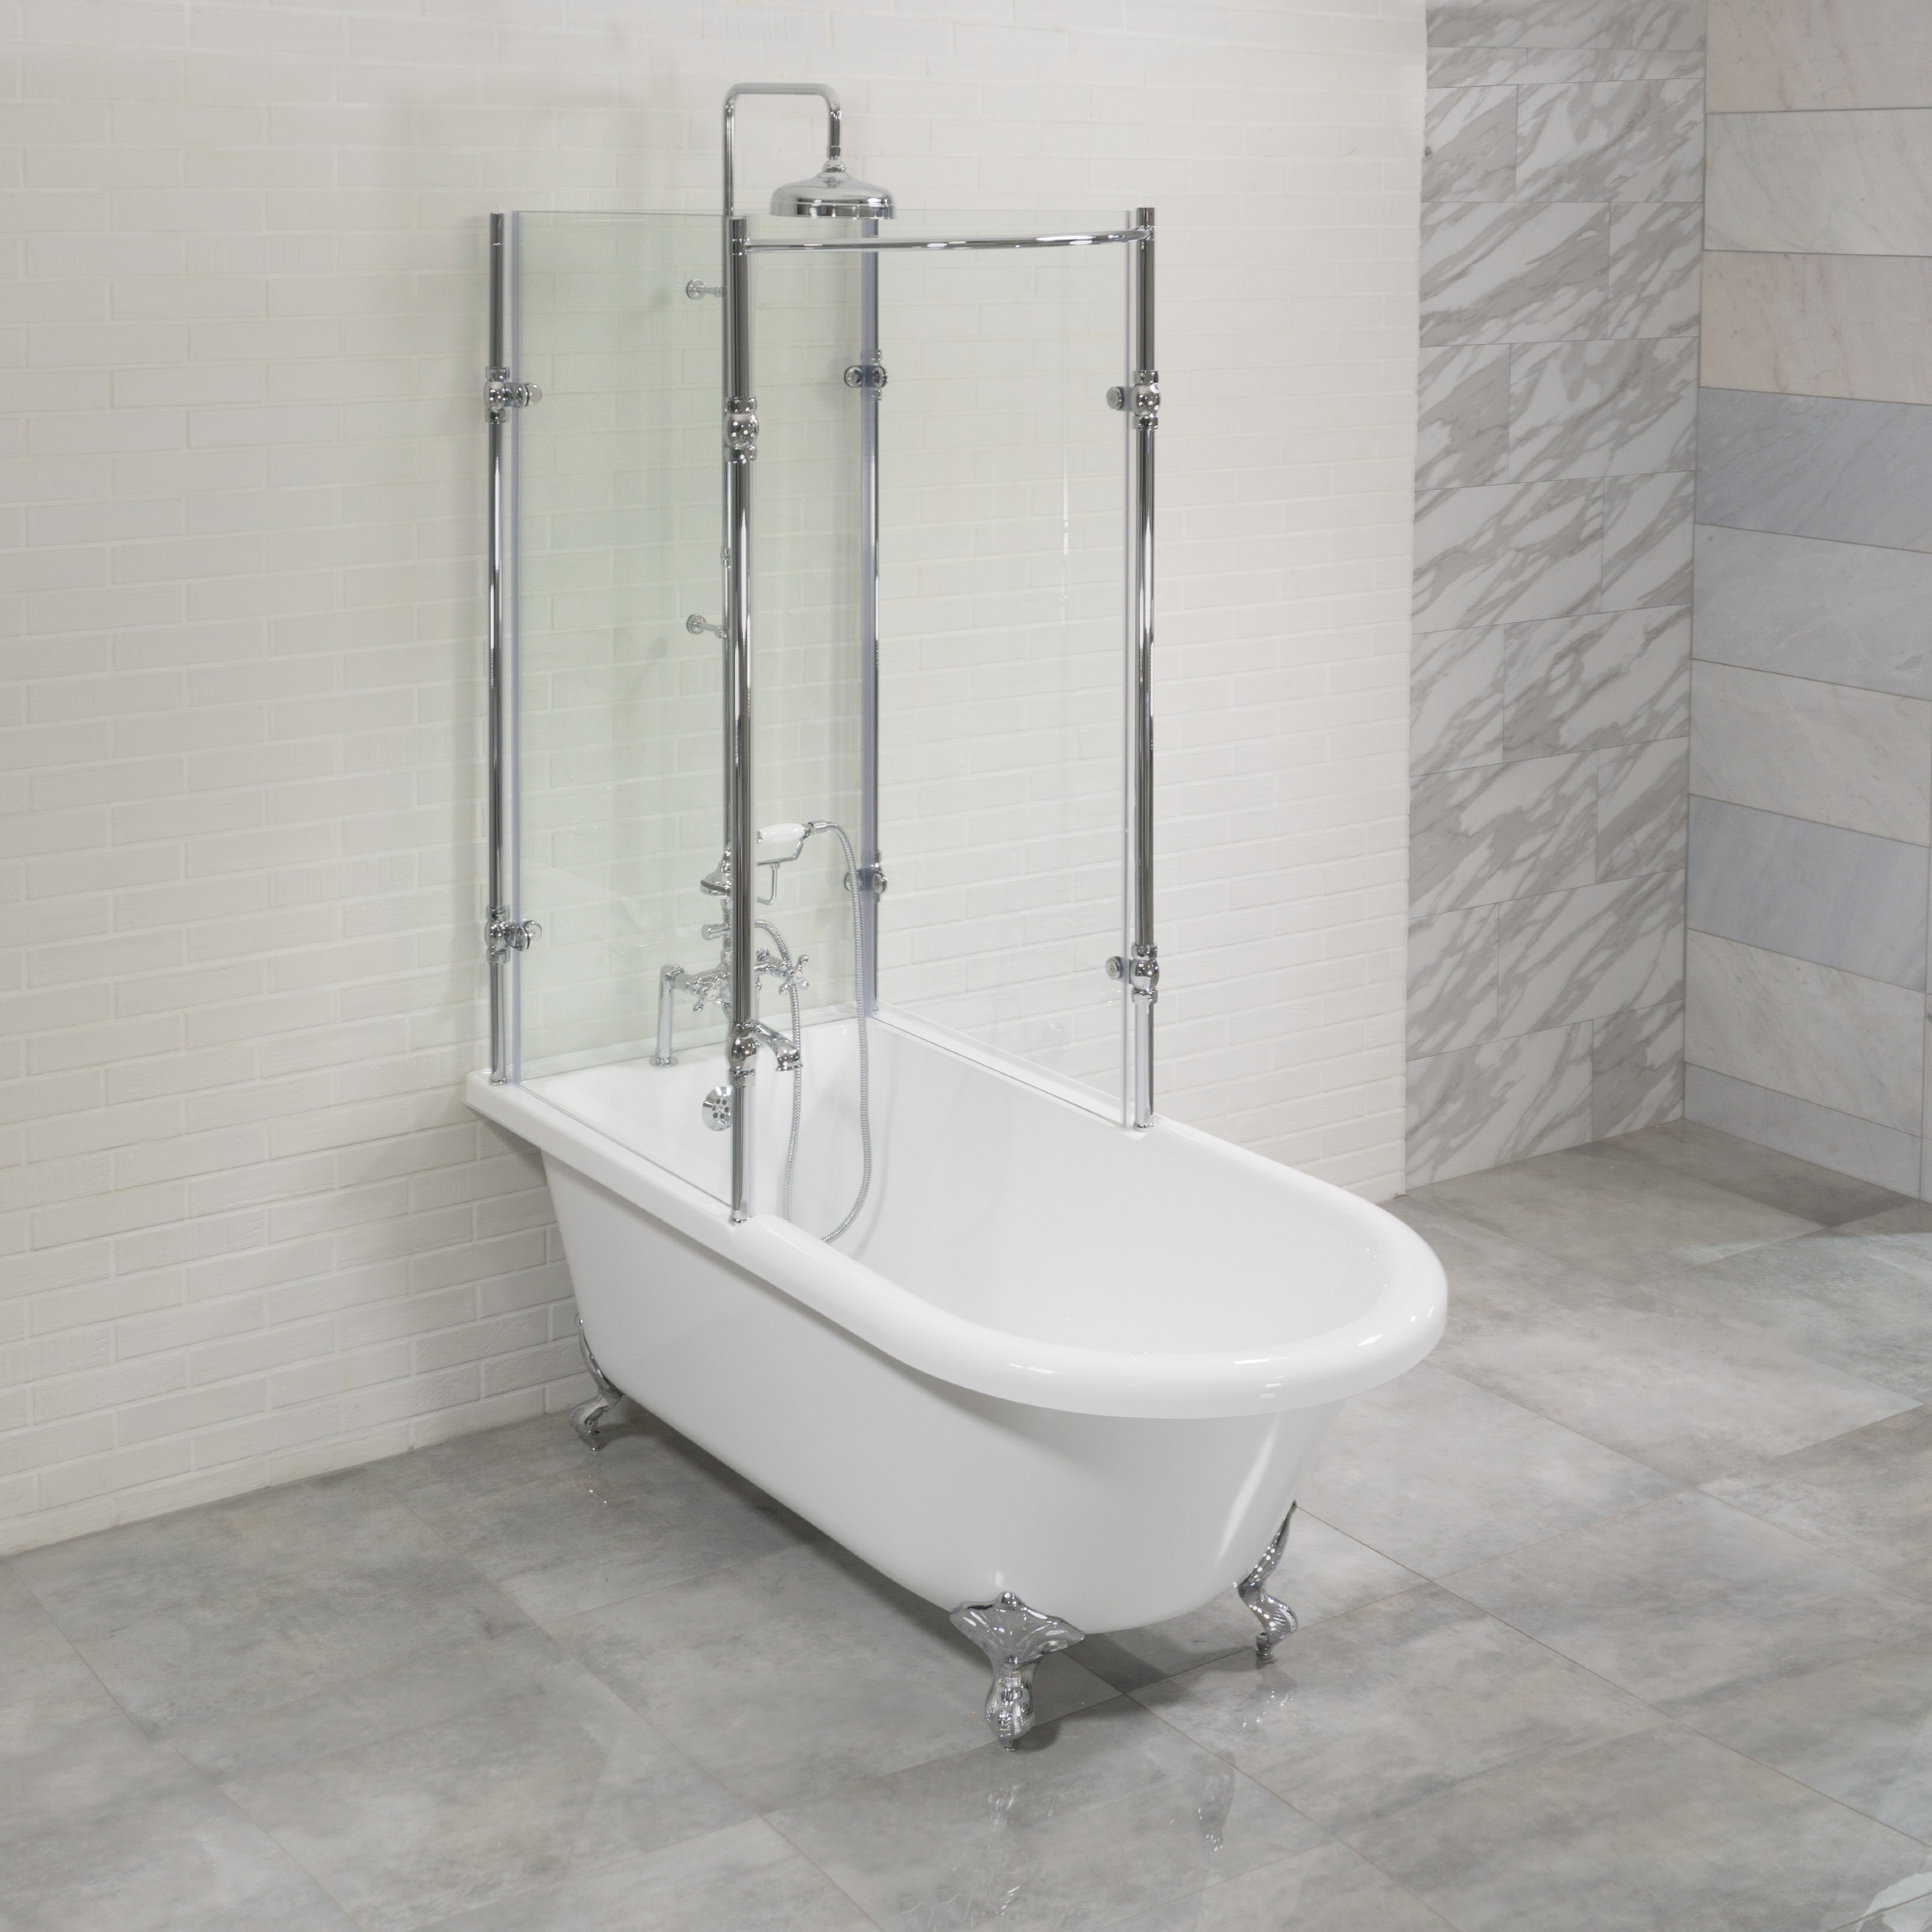 clawfoot tub shower enclosure kit. Oasis 59  Vintage Extra Wide Clawfoot Tub with Tempered Glass Shower Enclosure Package Antique Surround